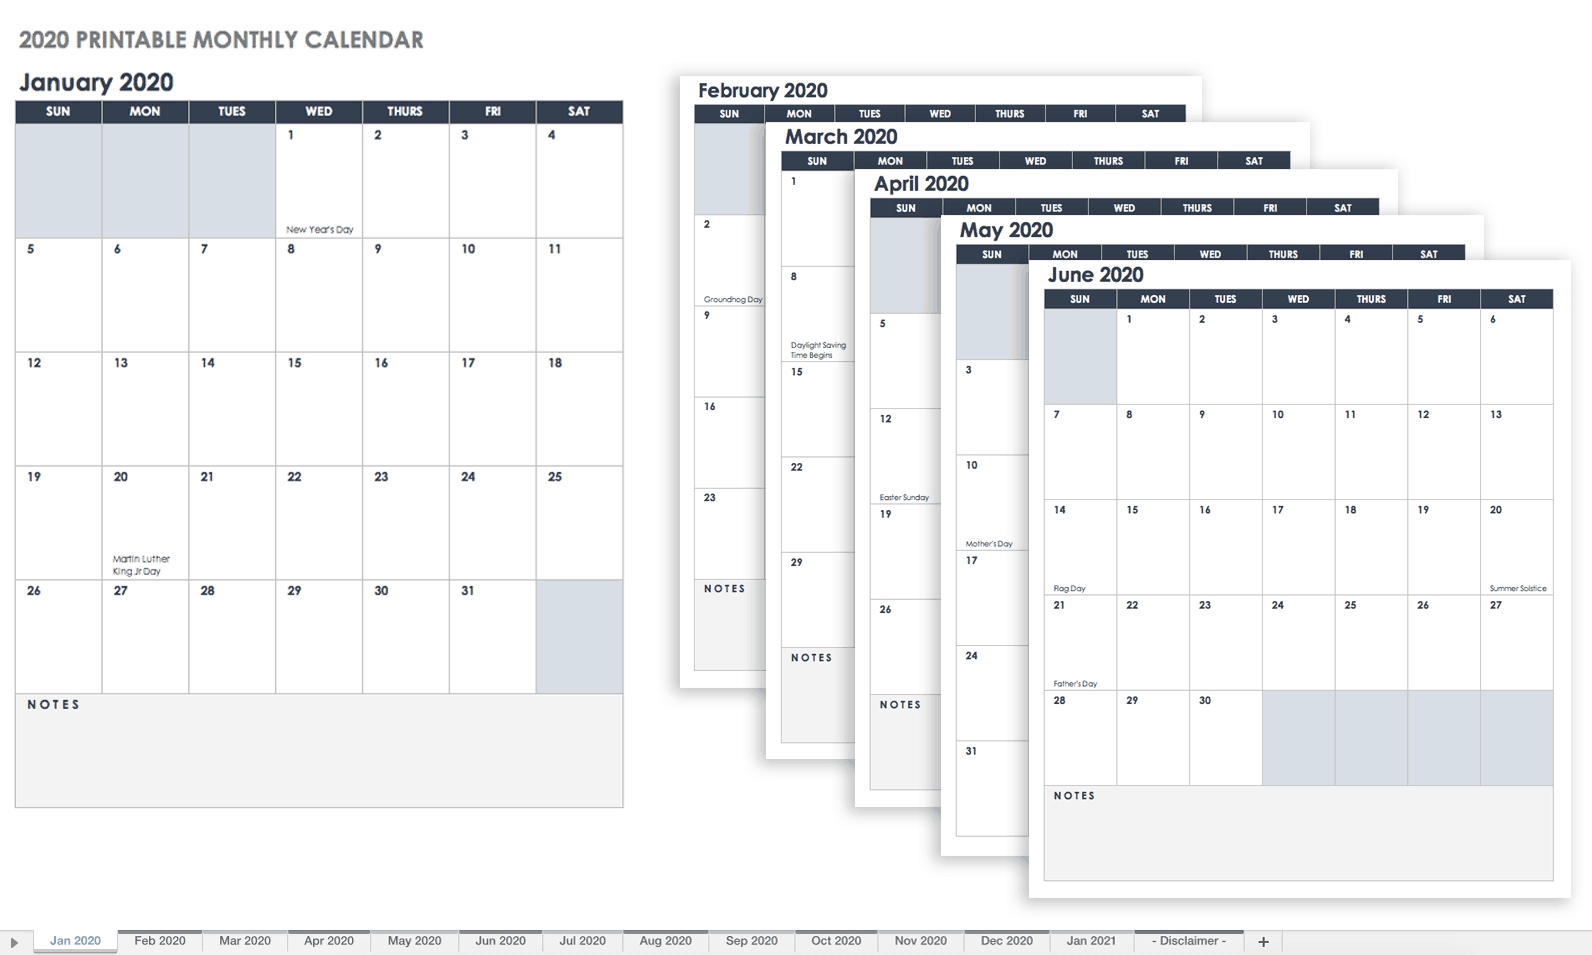 Free Blank Calendar Templates - Smartsheet-Monthly Calendars 2020 Printable Free 2-Pages Blank